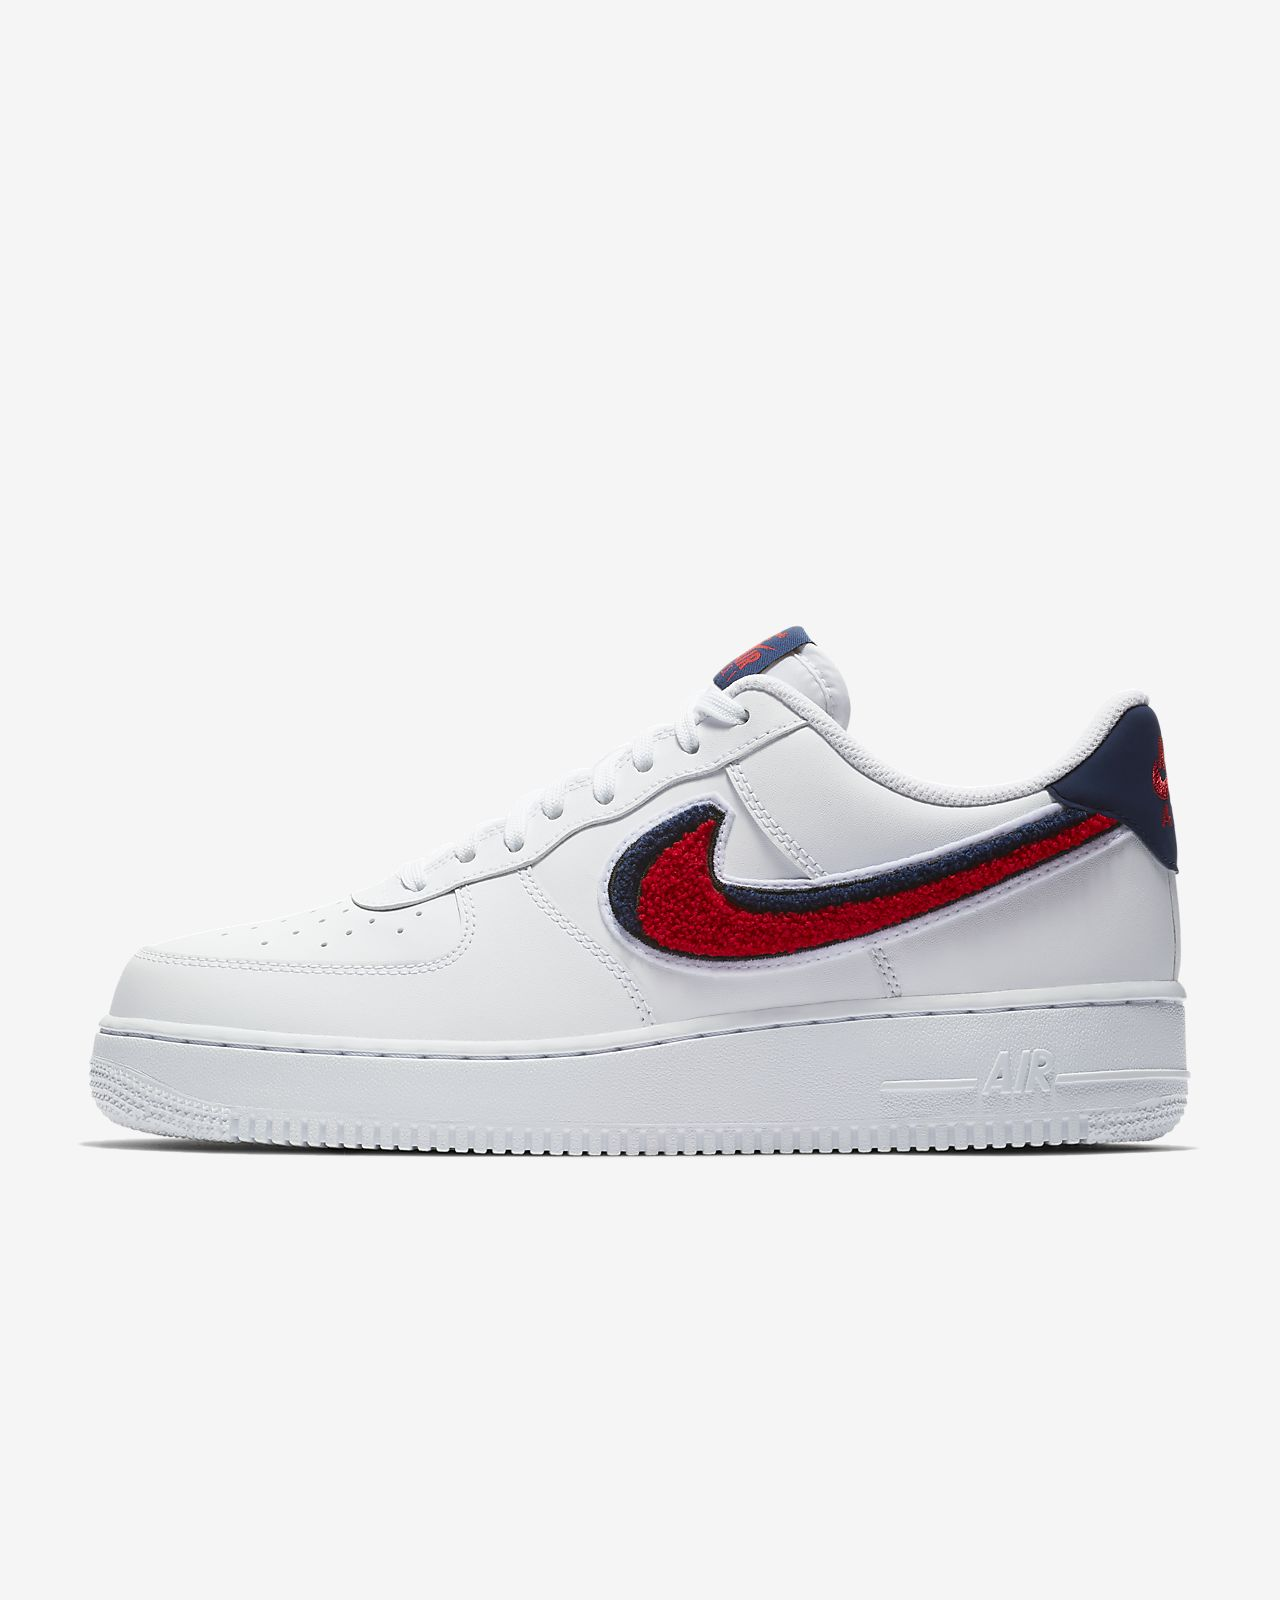 Nike Air Force 1 Low 07 LV8 Mens Shoe